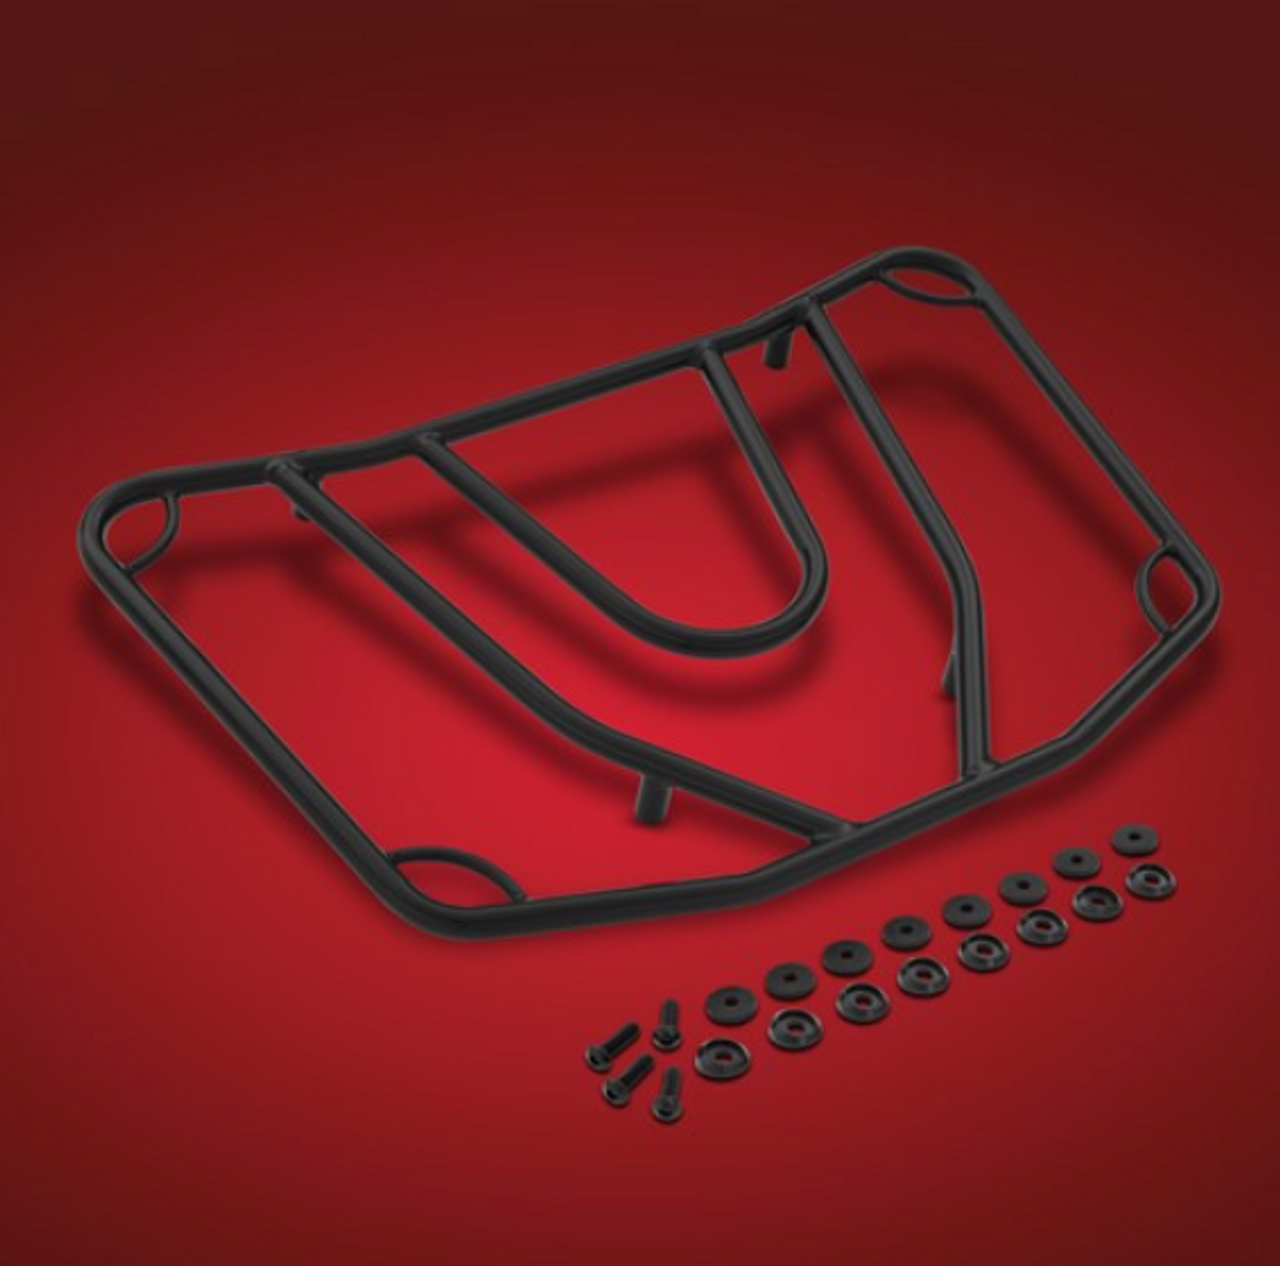 F3T and F3 LTD Black Luggage Rack (fits the BRP Top Case)